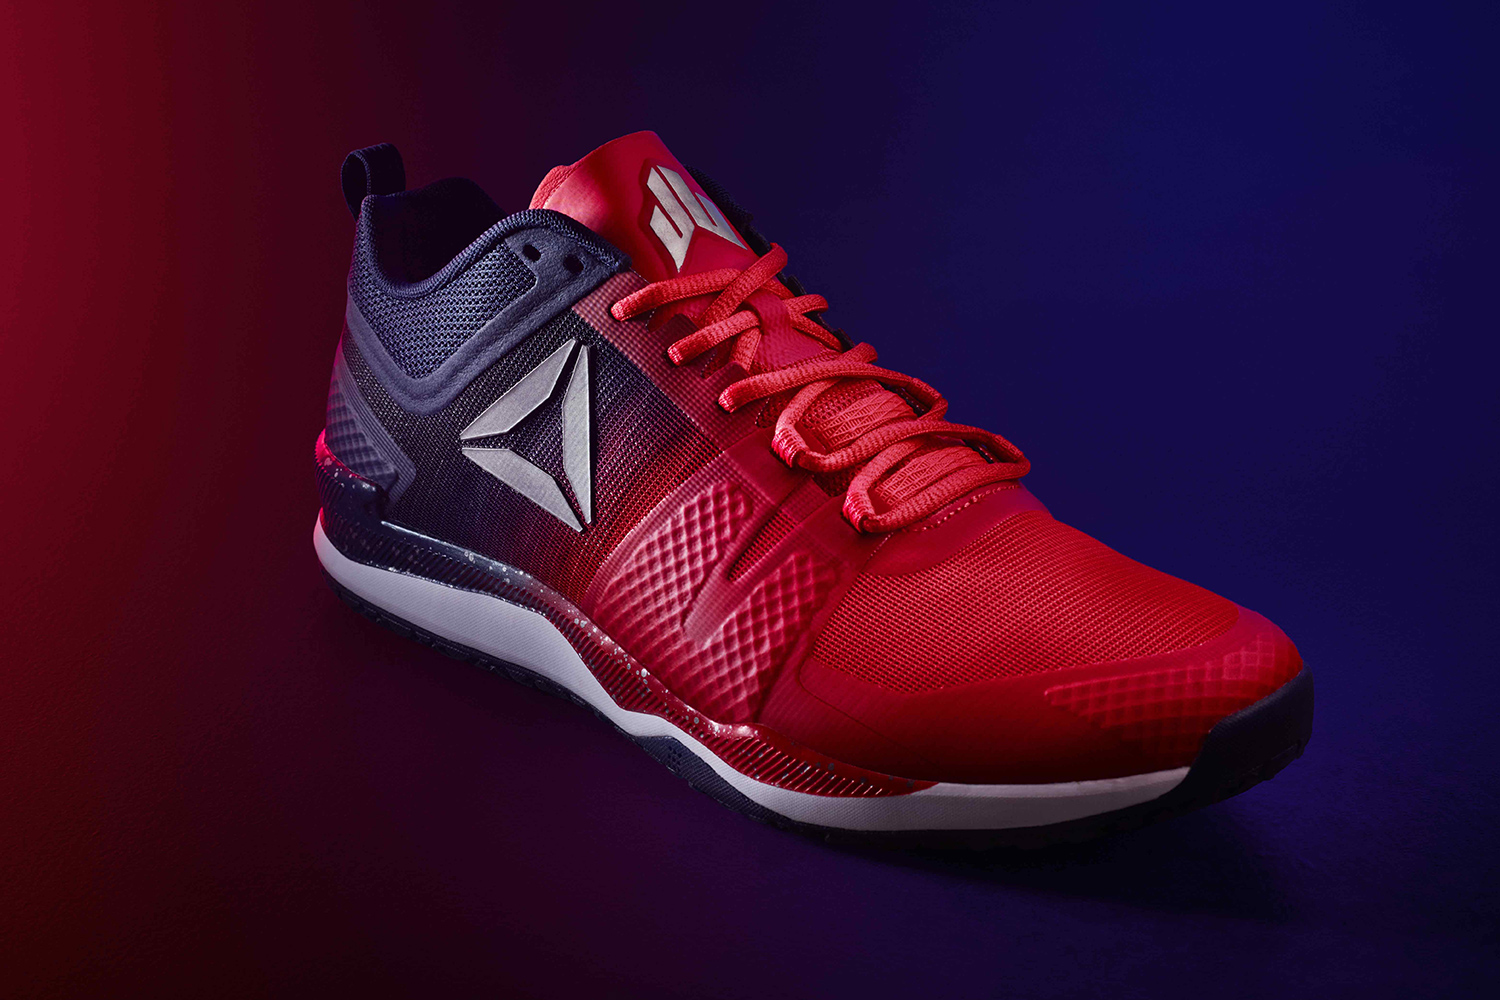 62f70392b305 Houston Texans star J.J. Watt partnered with Reebok to release his  signature JJ I shoe not too long ago